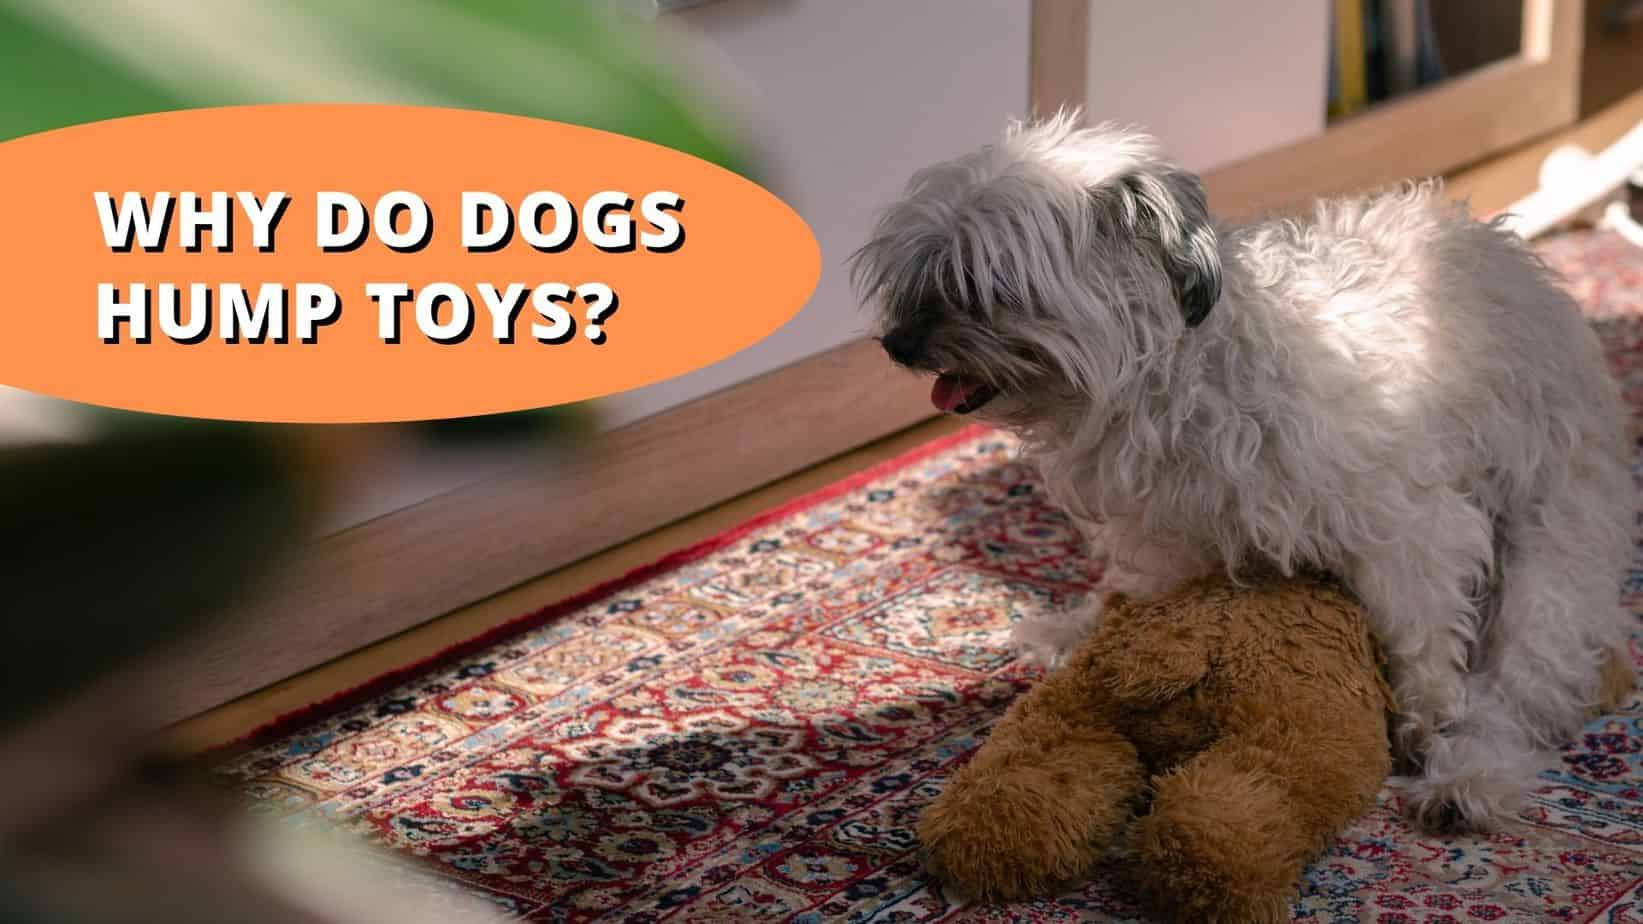 Why do dogs hump toys?